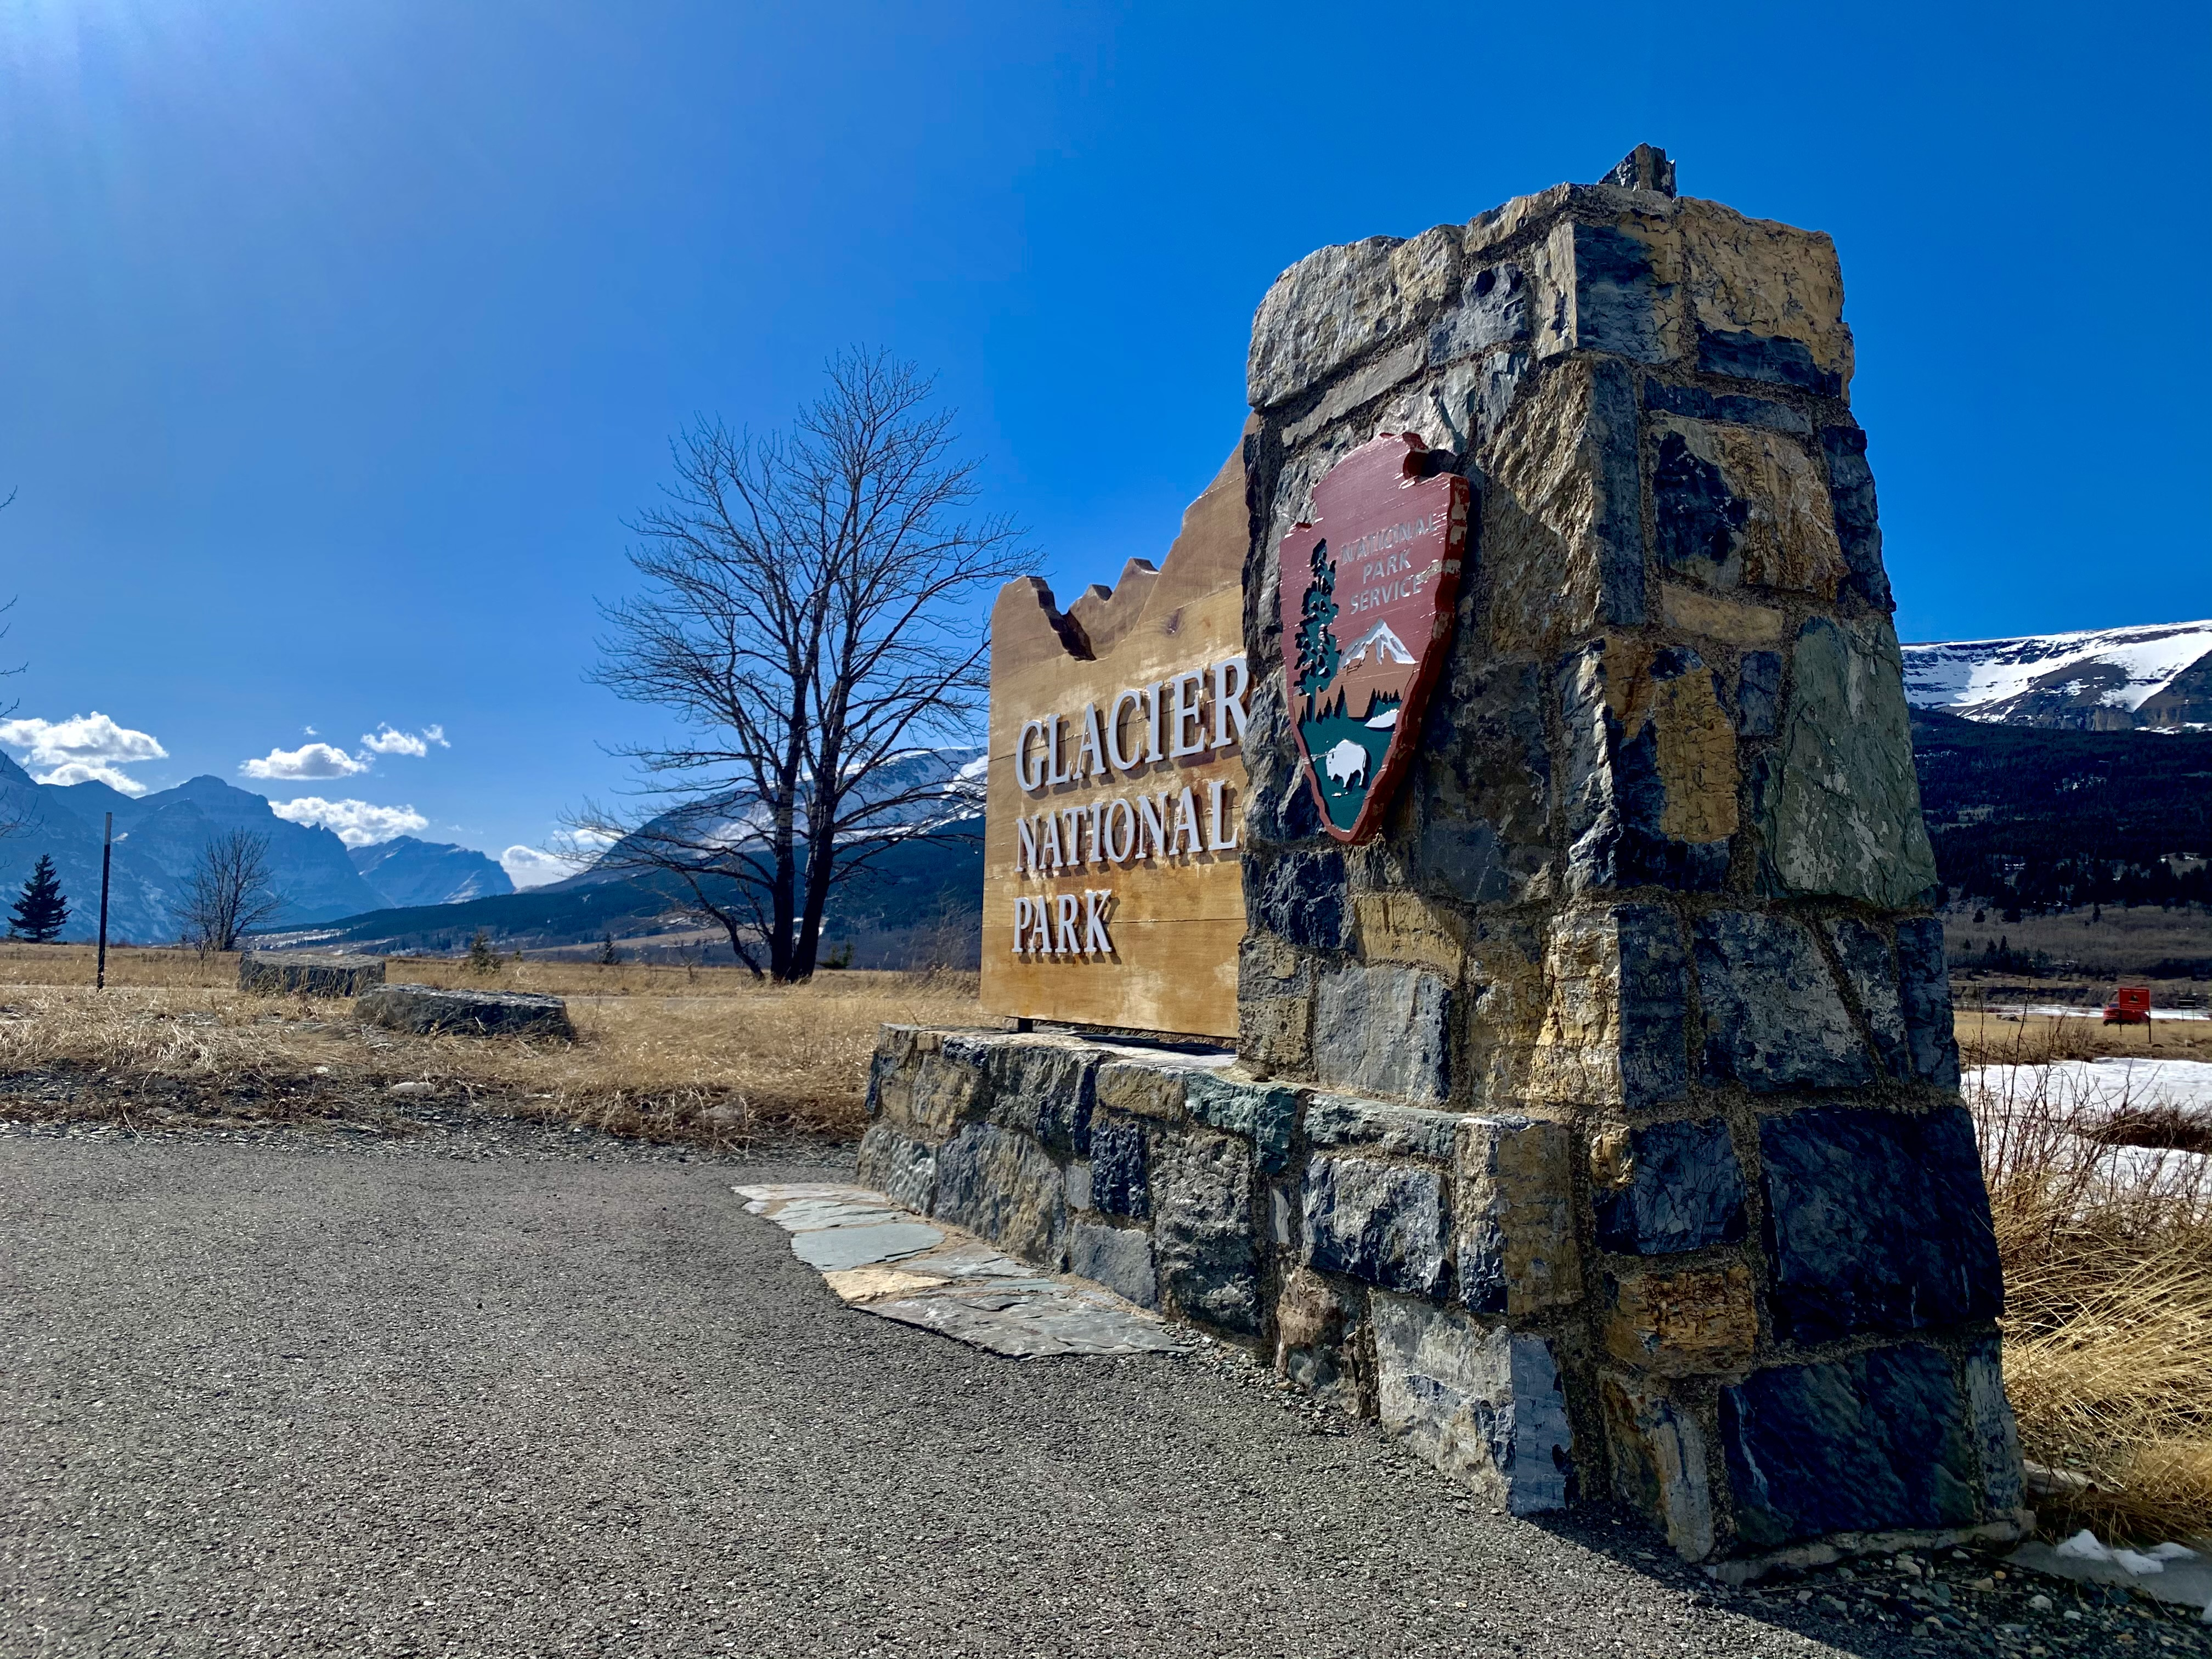 Glacier National Park announces info on Spring operations